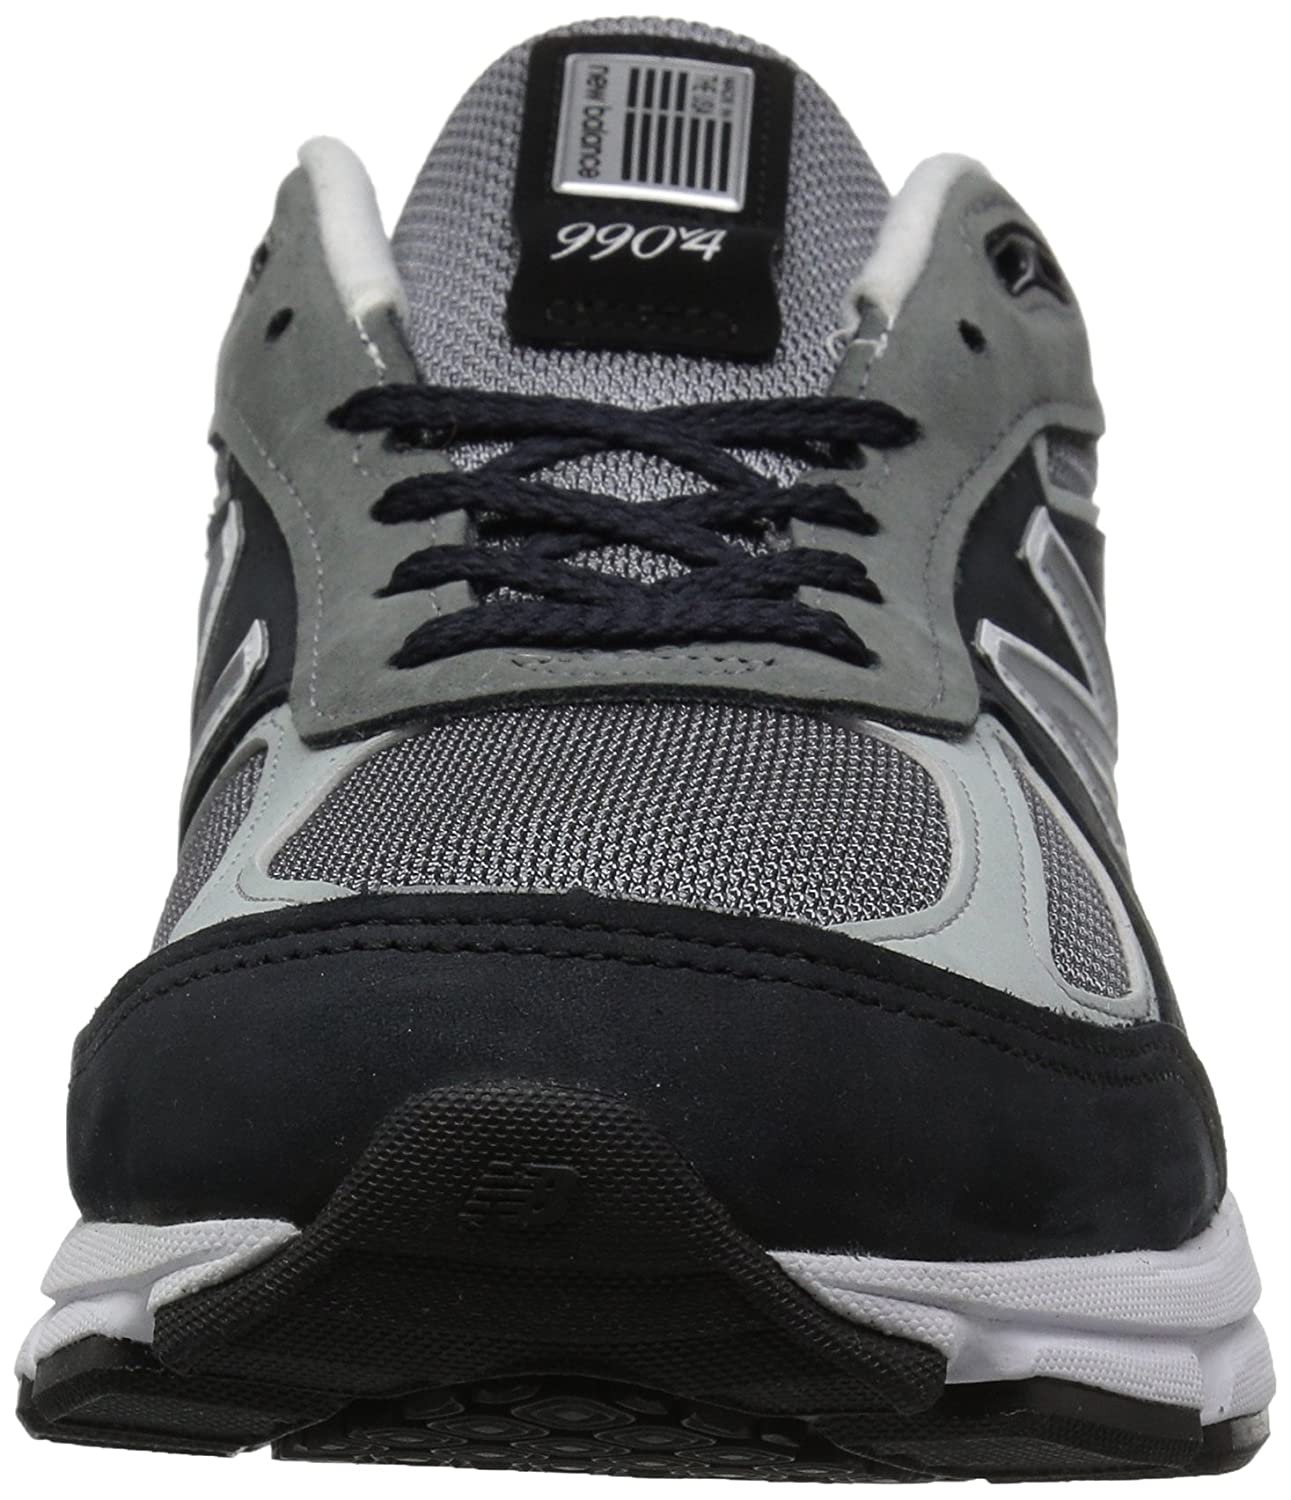 New-Balance-990-990v4-Classicc-Retro-Fashion-Sneaker-Made-in-USA thumbnail 56